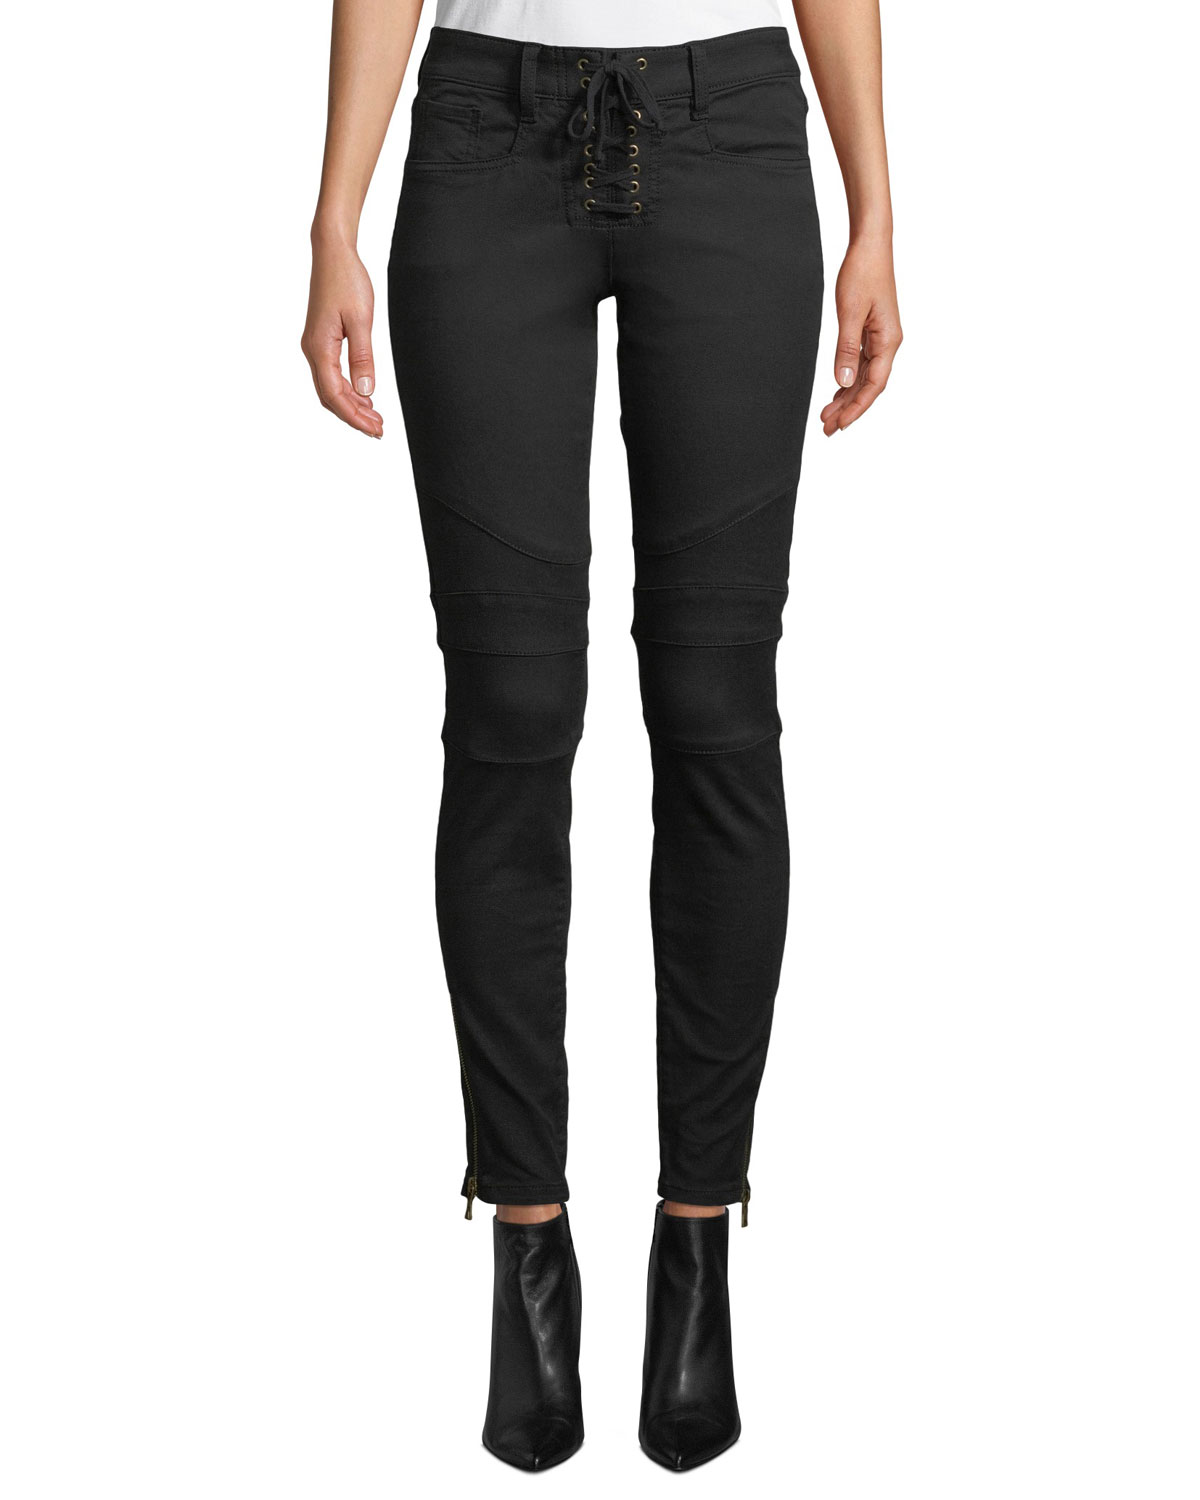 Joie Adorea Skinny Lace-Up Ankle-Zip Moto Pants